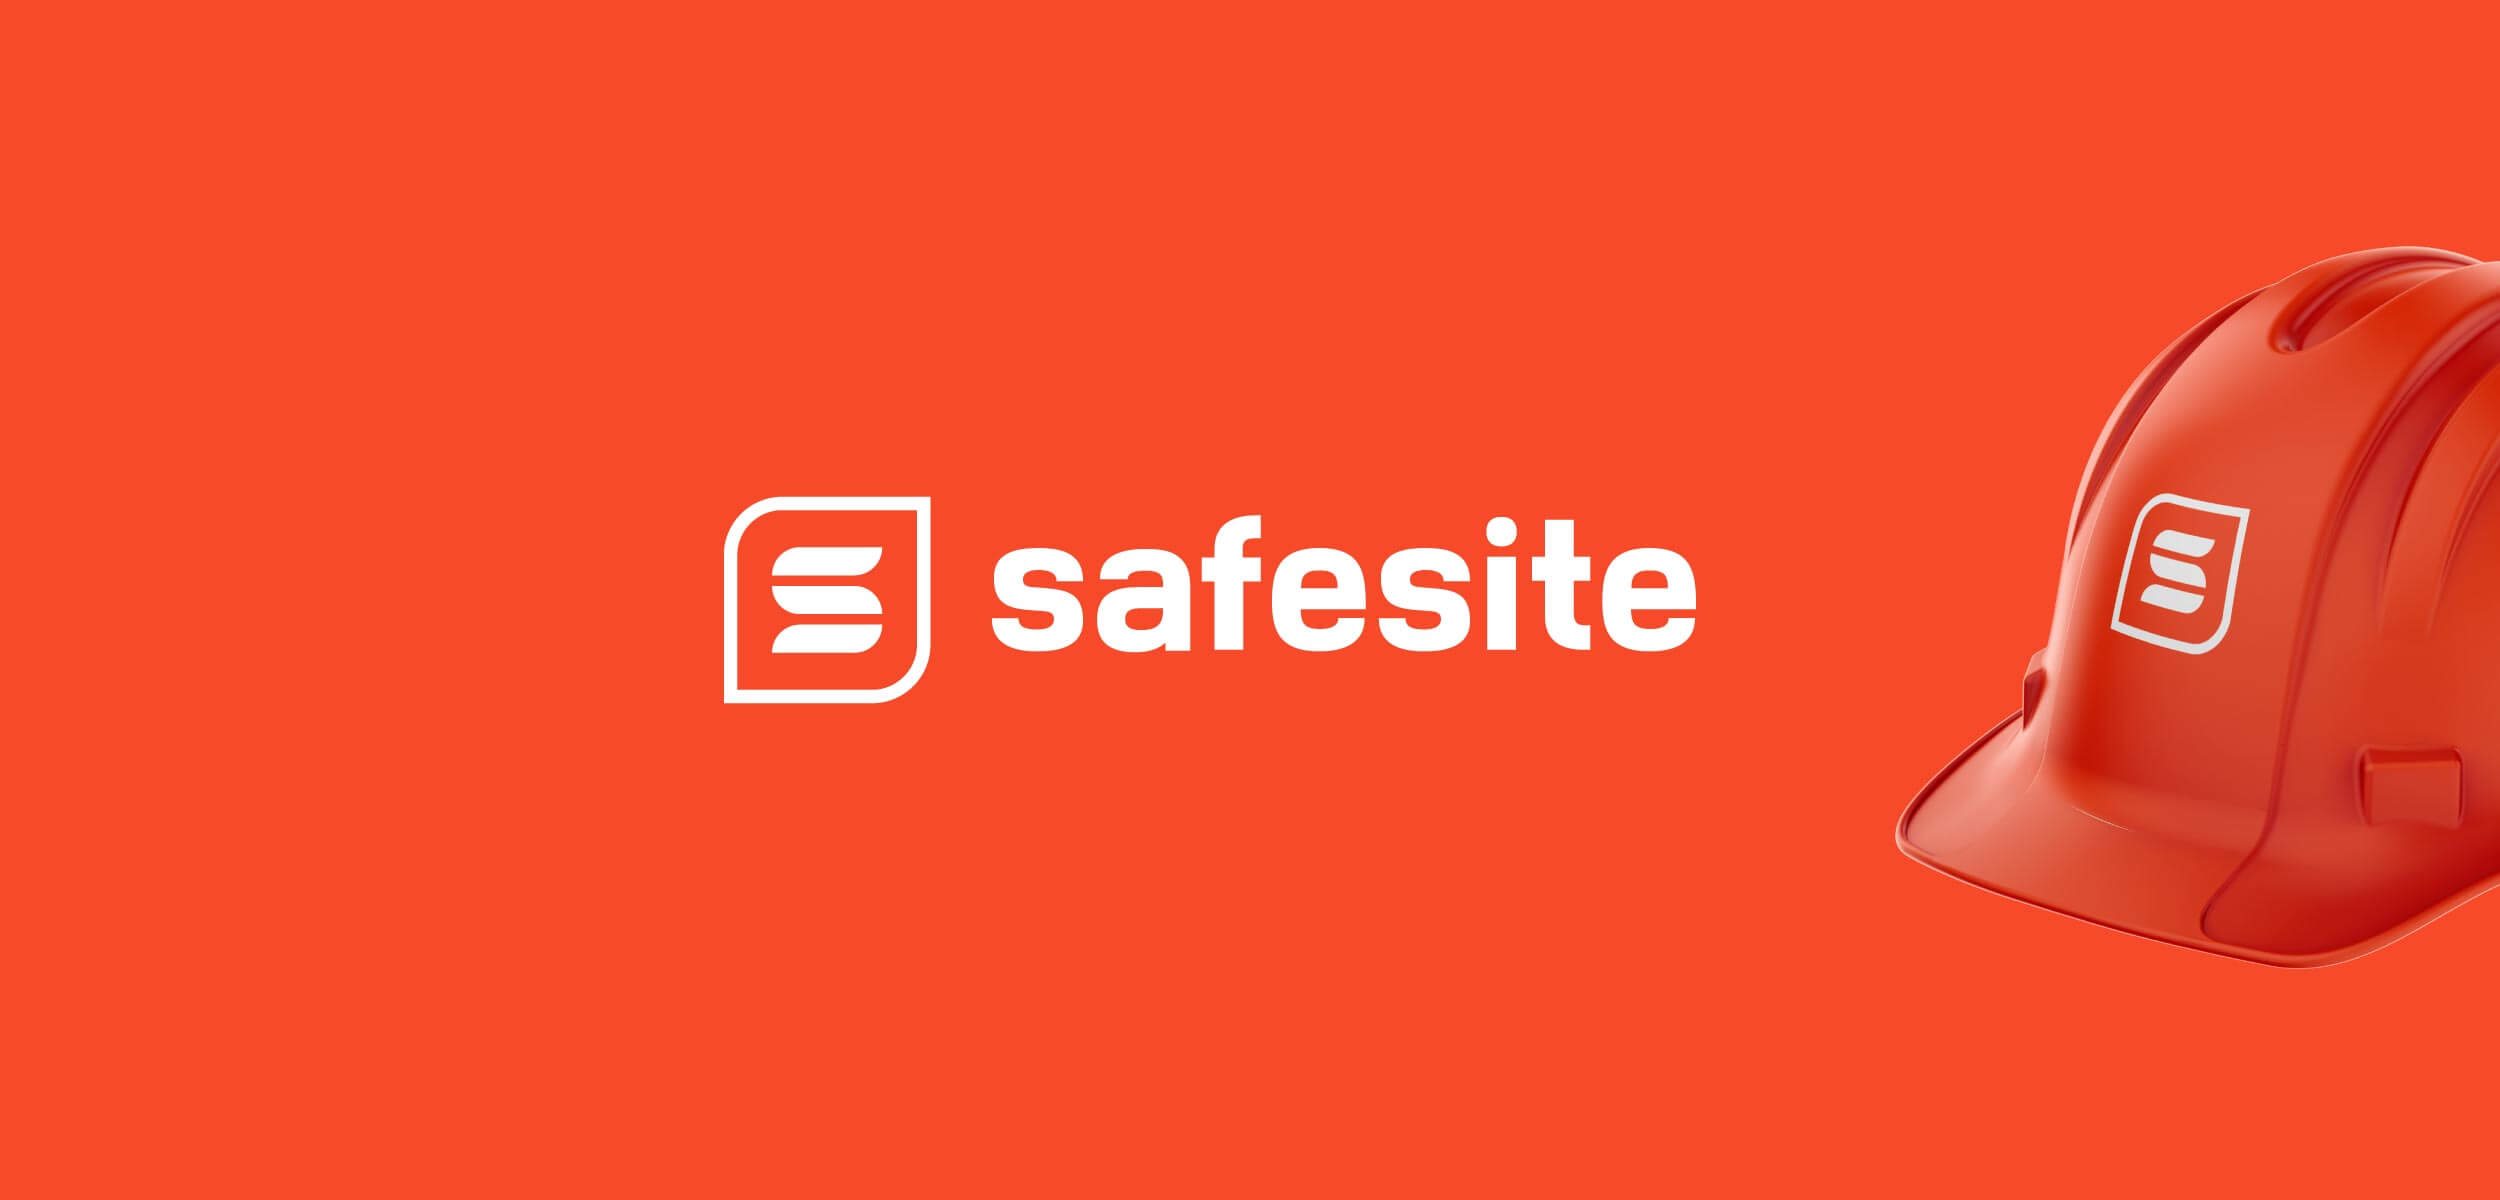 Safesite Brand Refresh Project